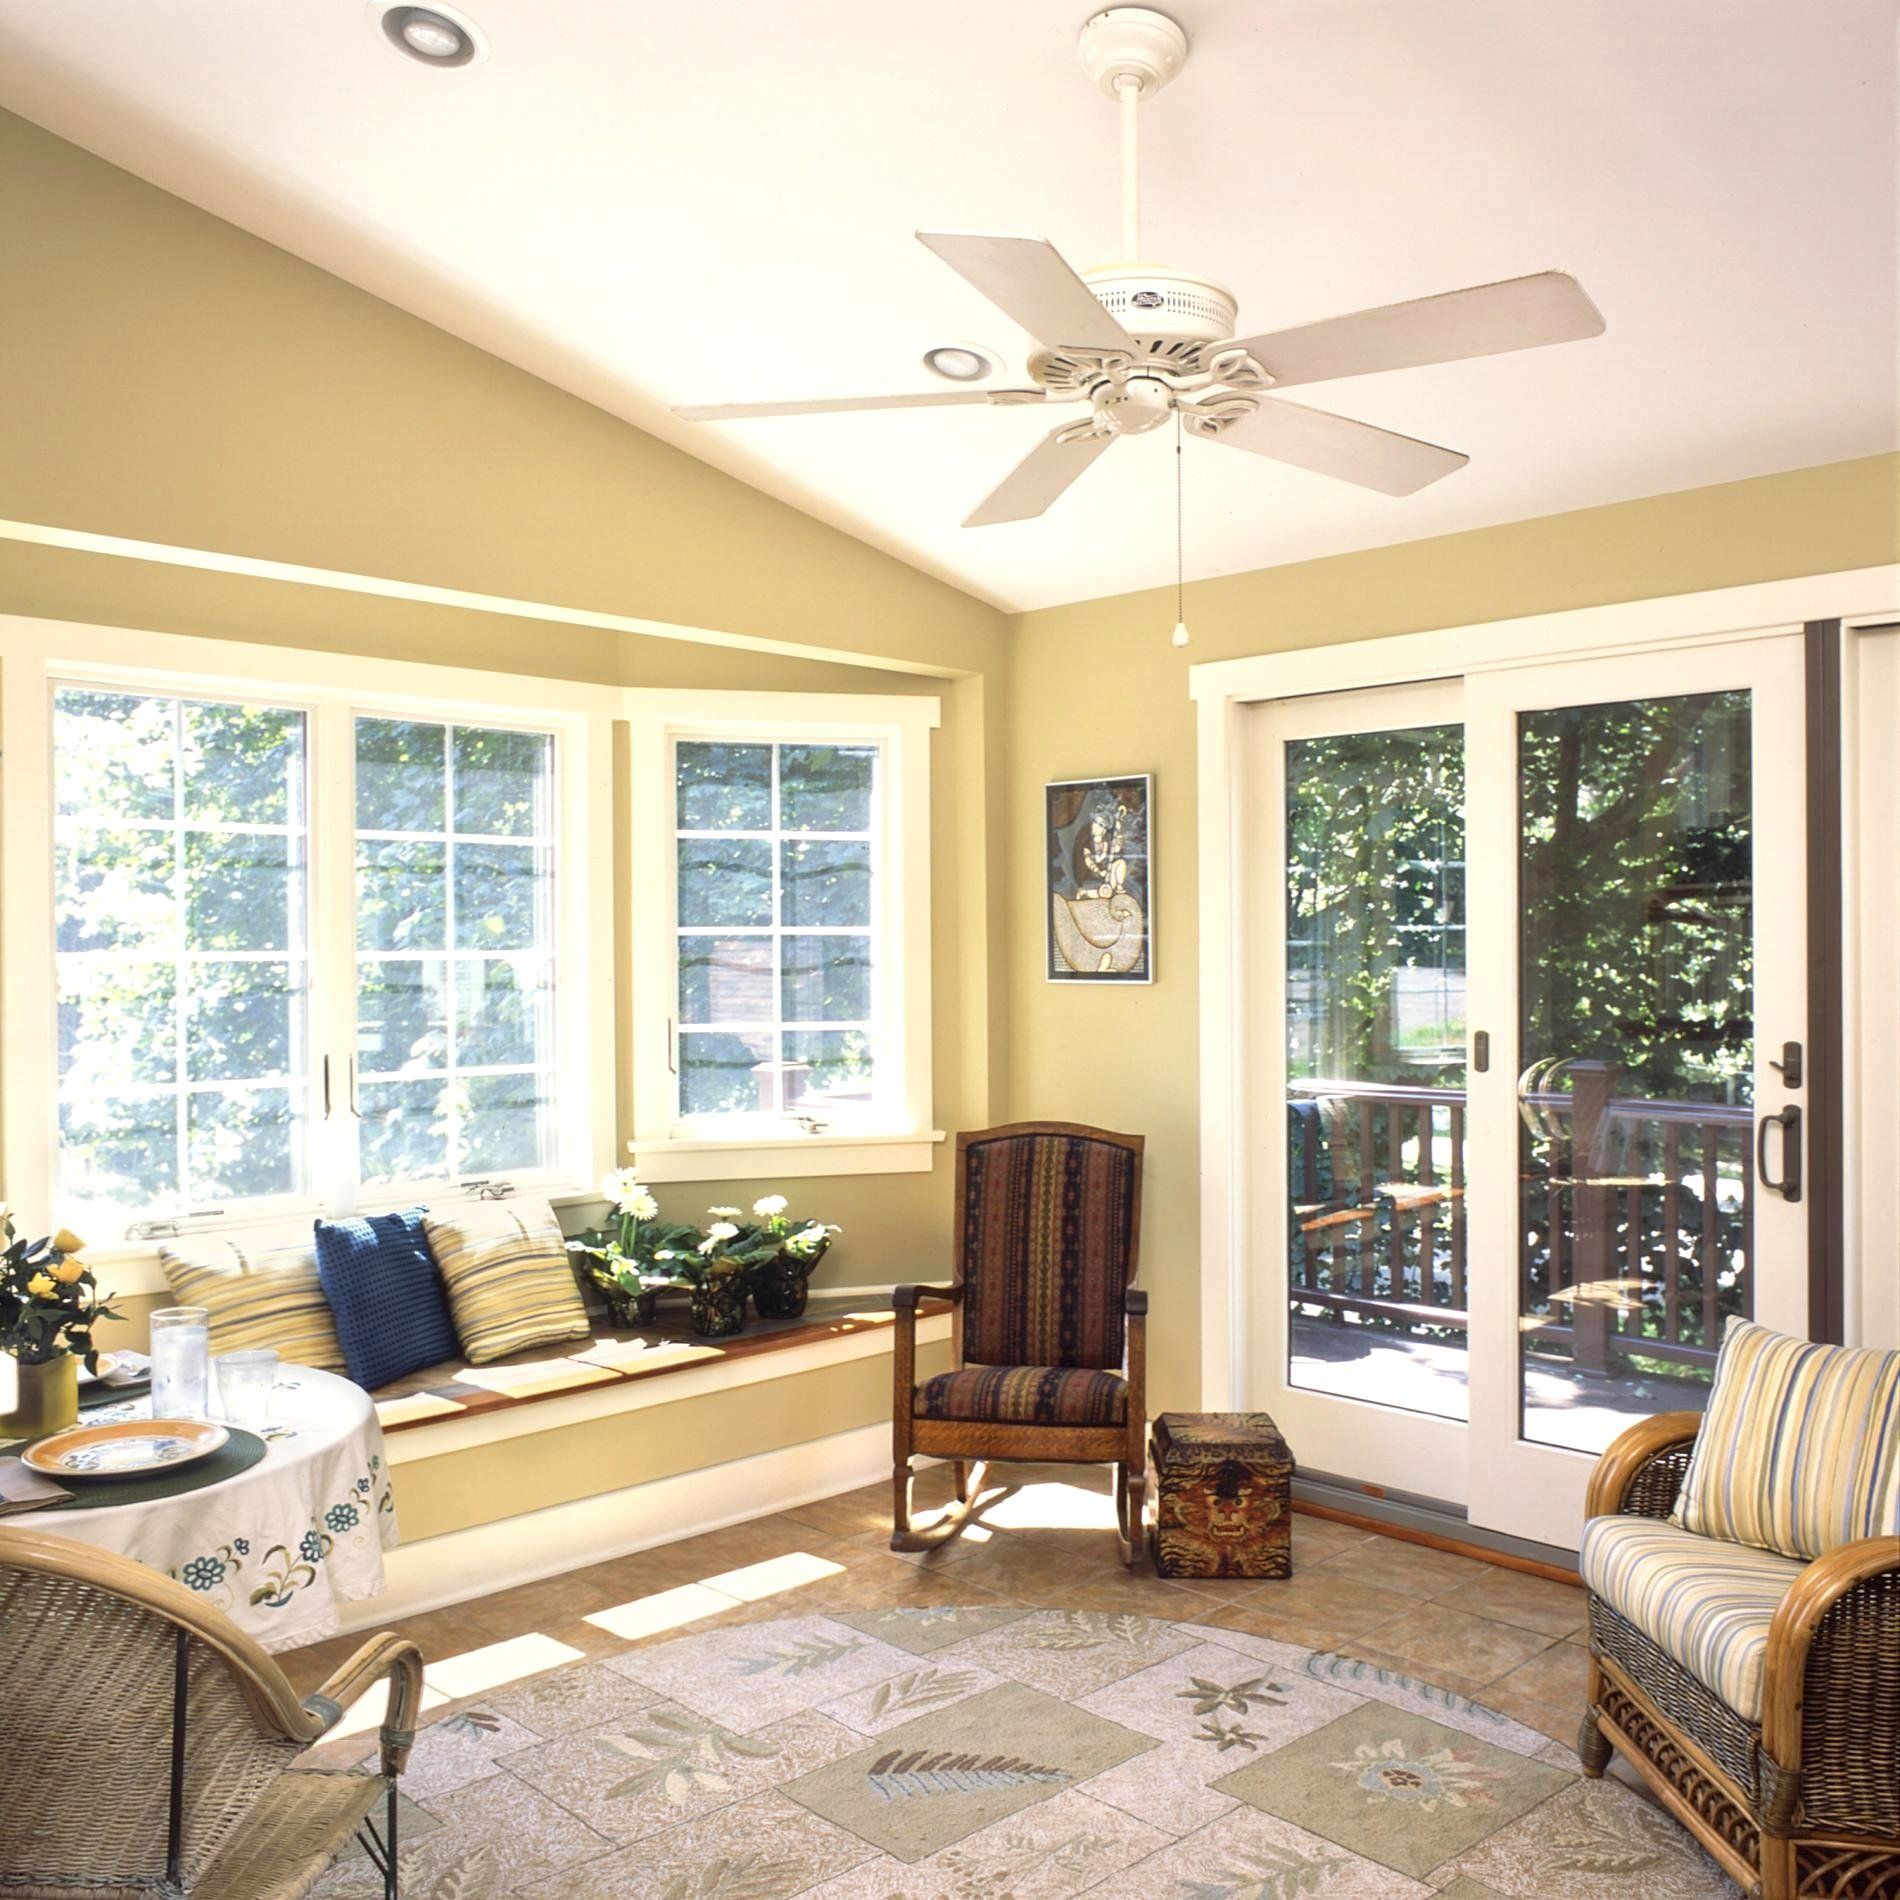 Rustic White Ceiling Fans. Ceilings Rustic White Ceiling Fans - Brint.co